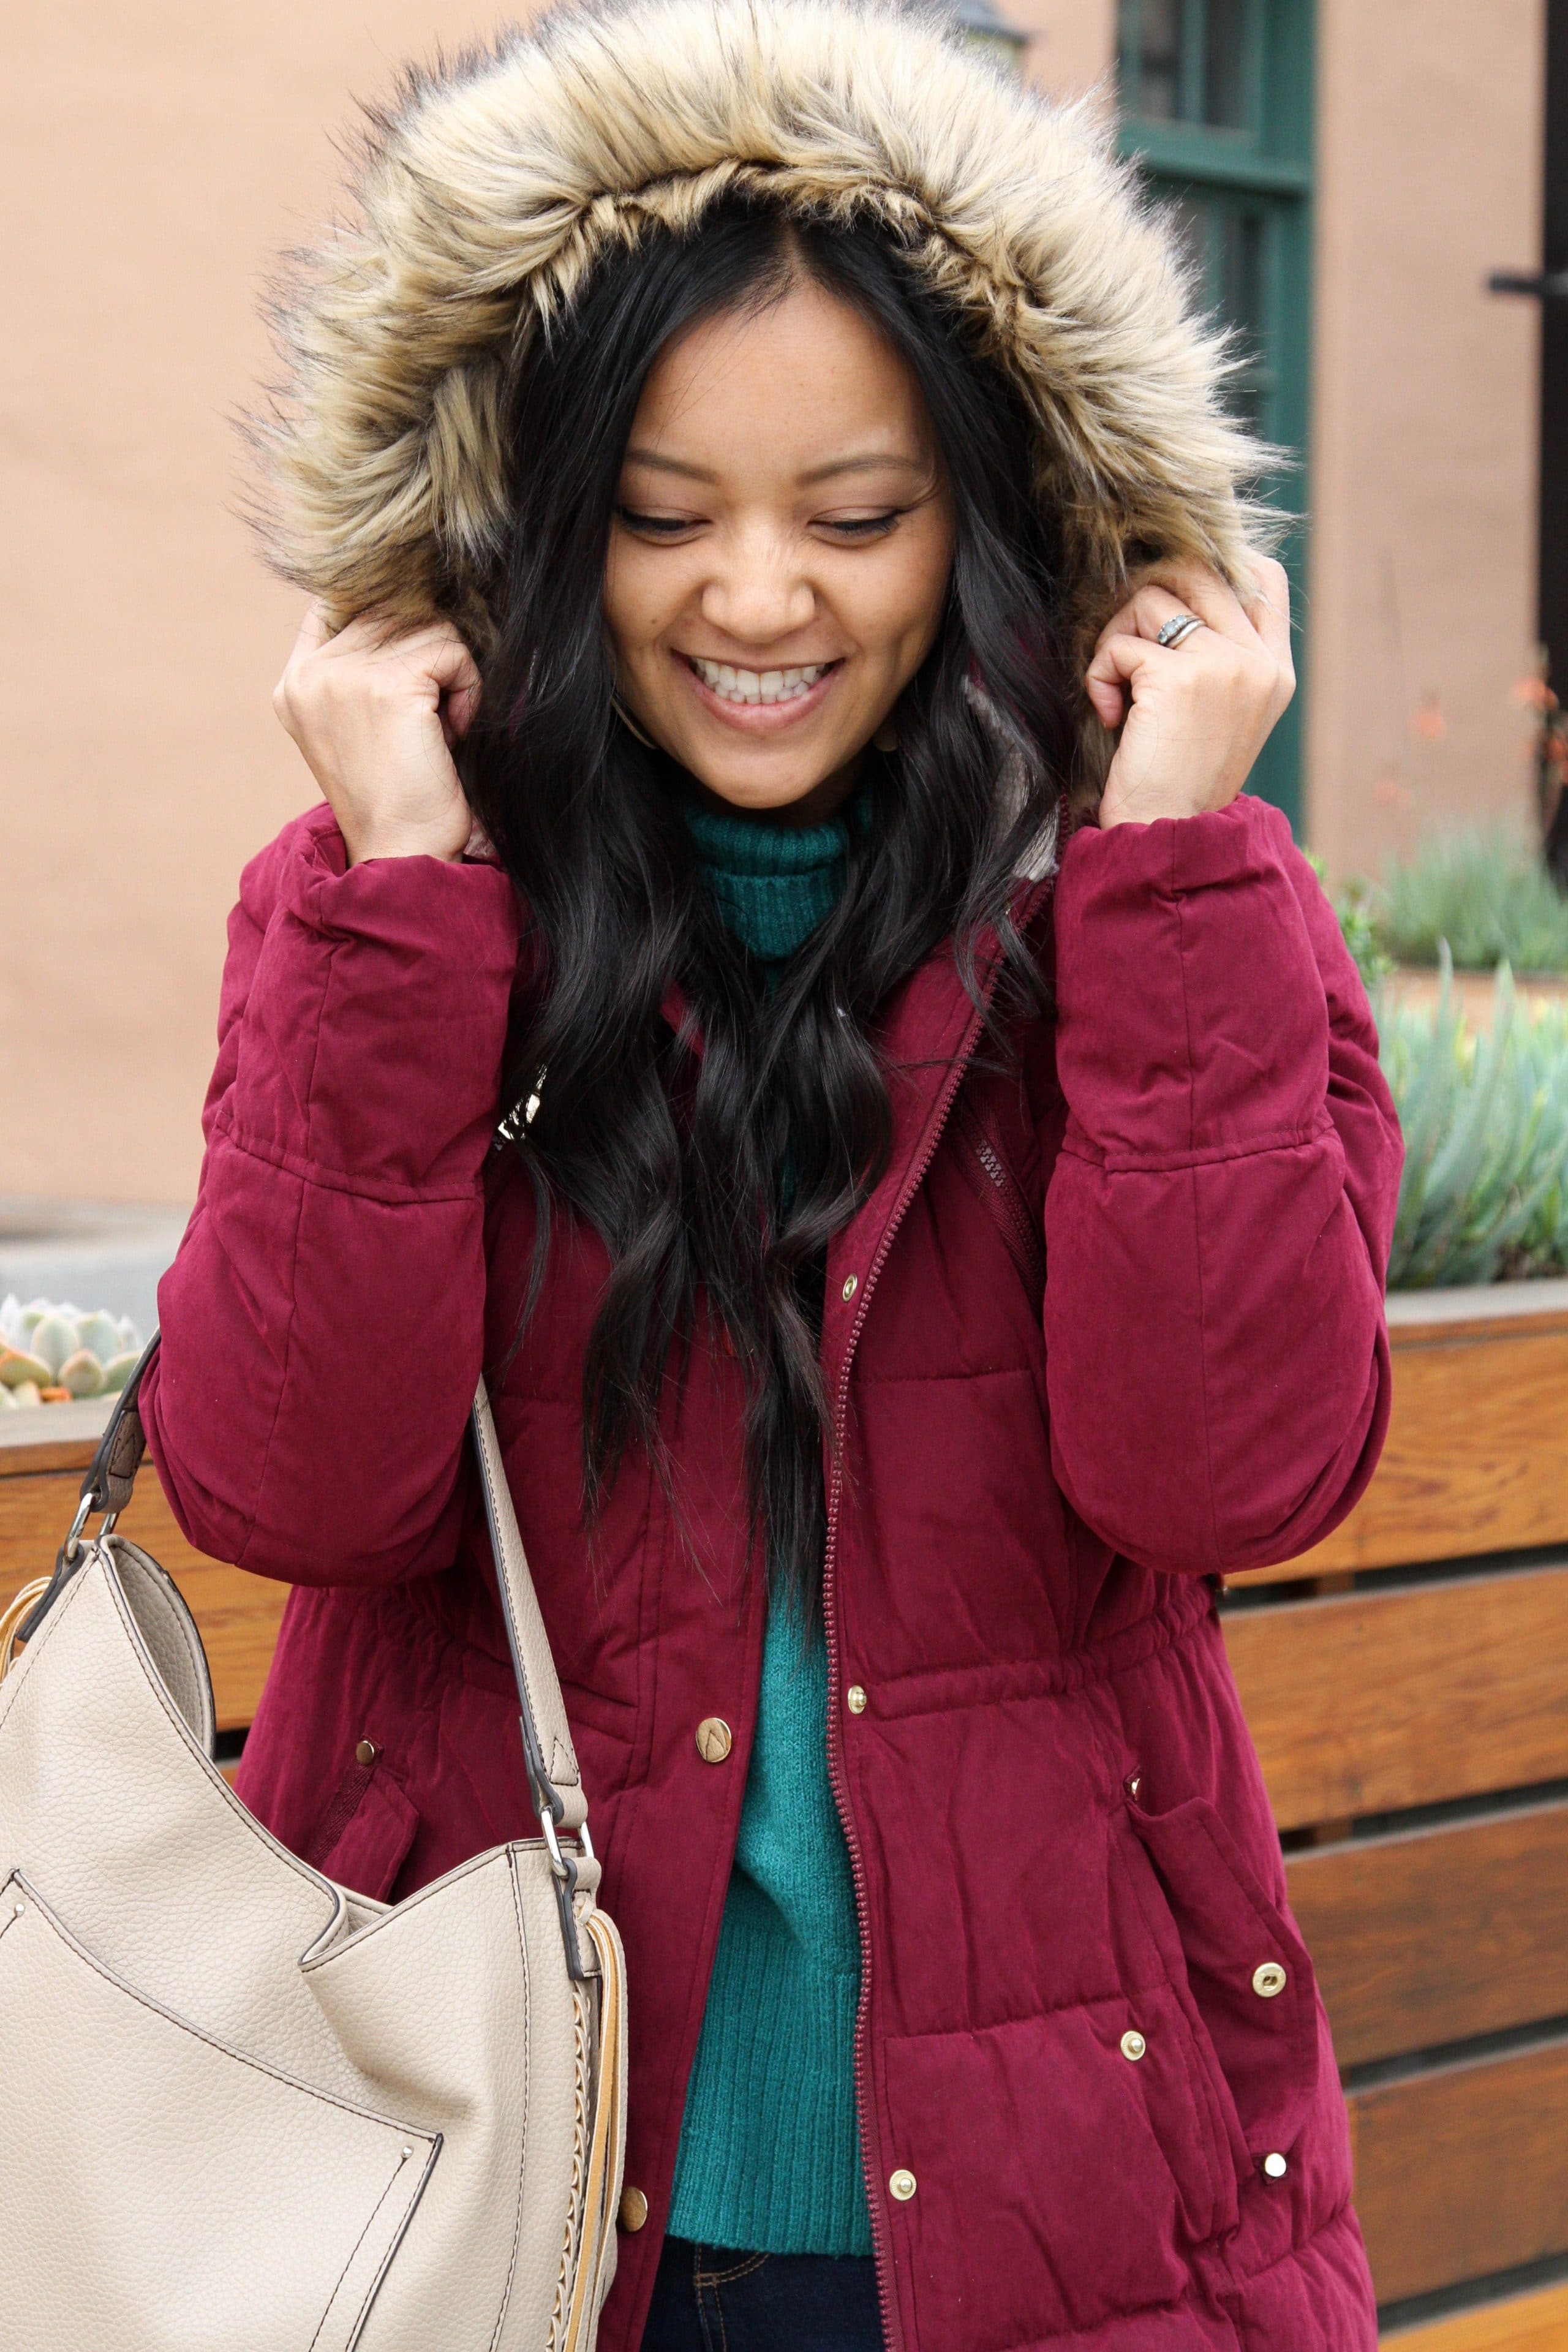 Maroon Puffer + Tan Bag + Green Sweater